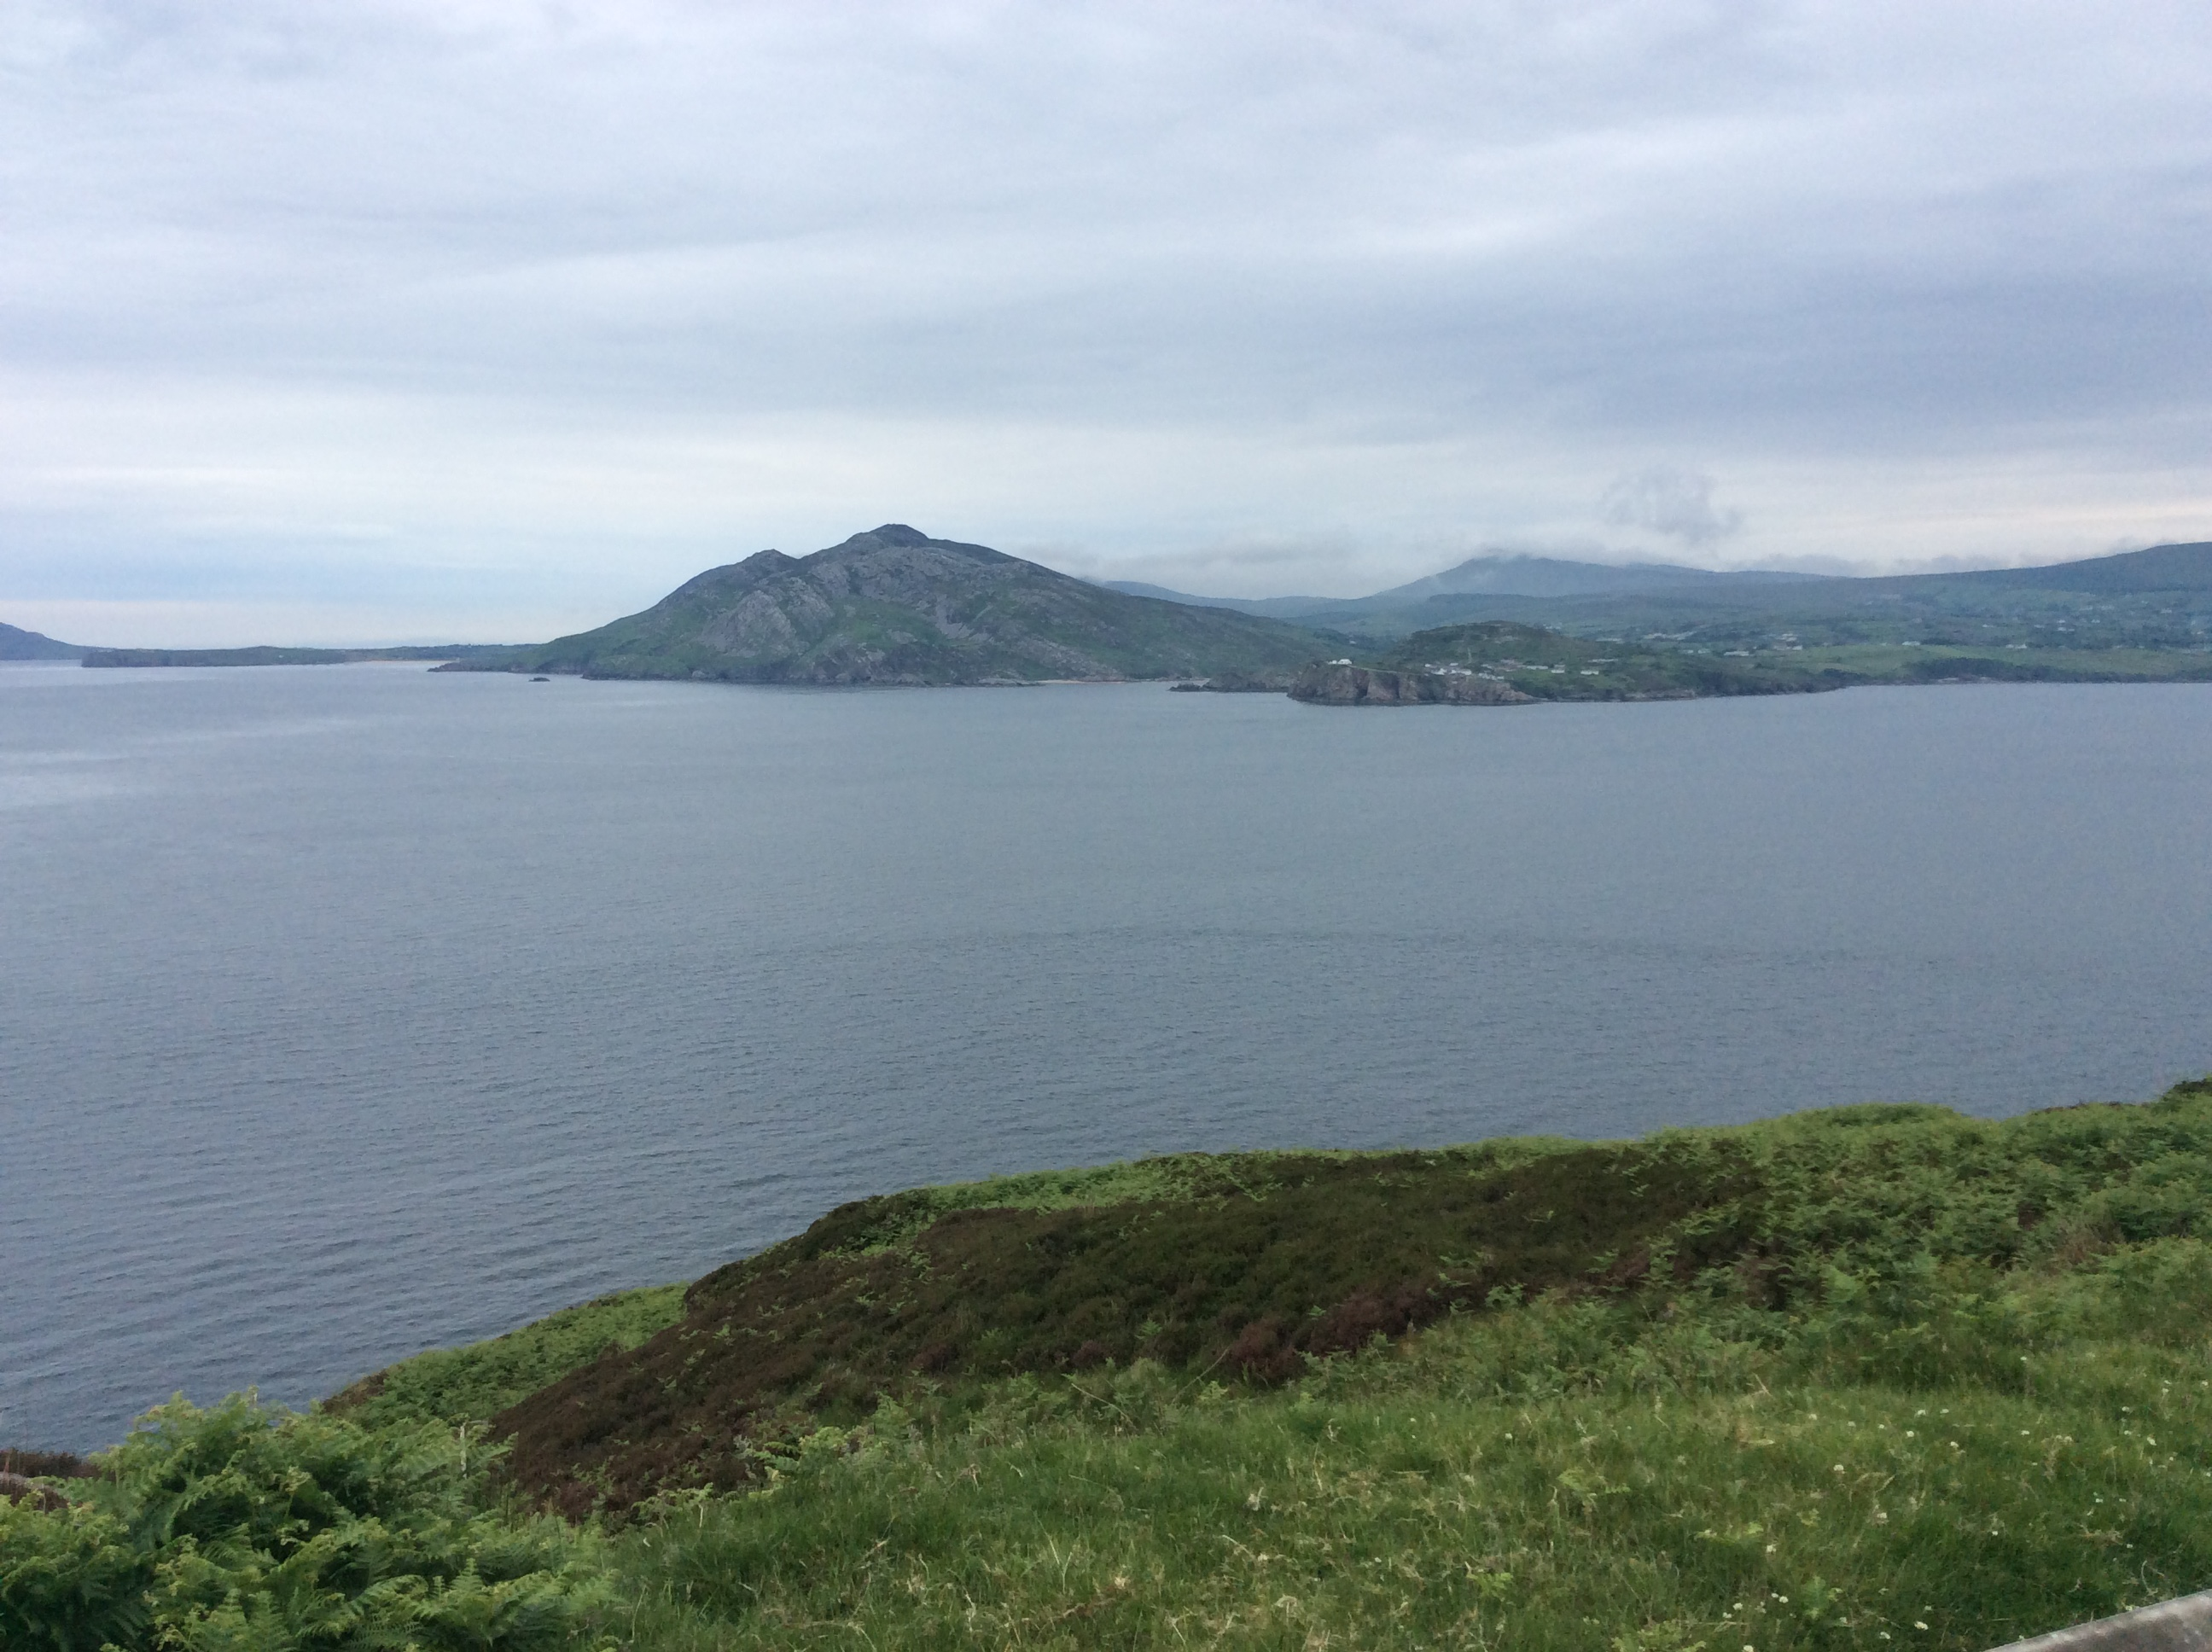 Dunree Fort guarded the deep safe anchorage of Lough Swilly up until 1938 when the British Navy left